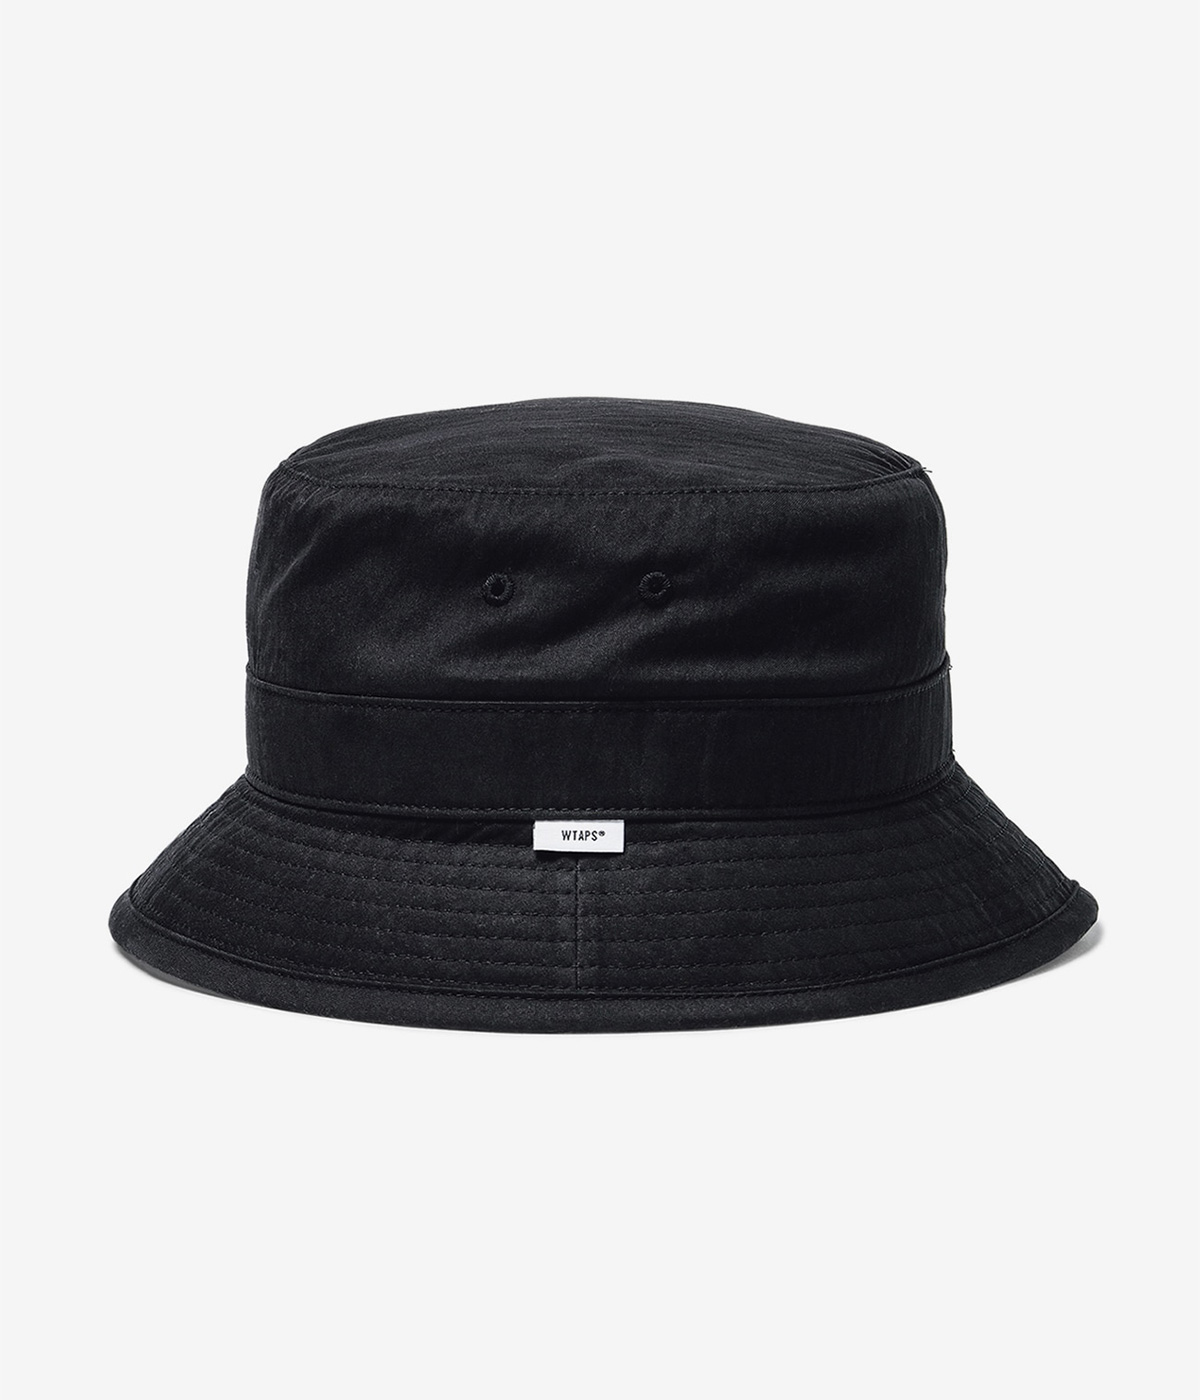 BUCKET 03 / HAT. NYCO. OXFORD